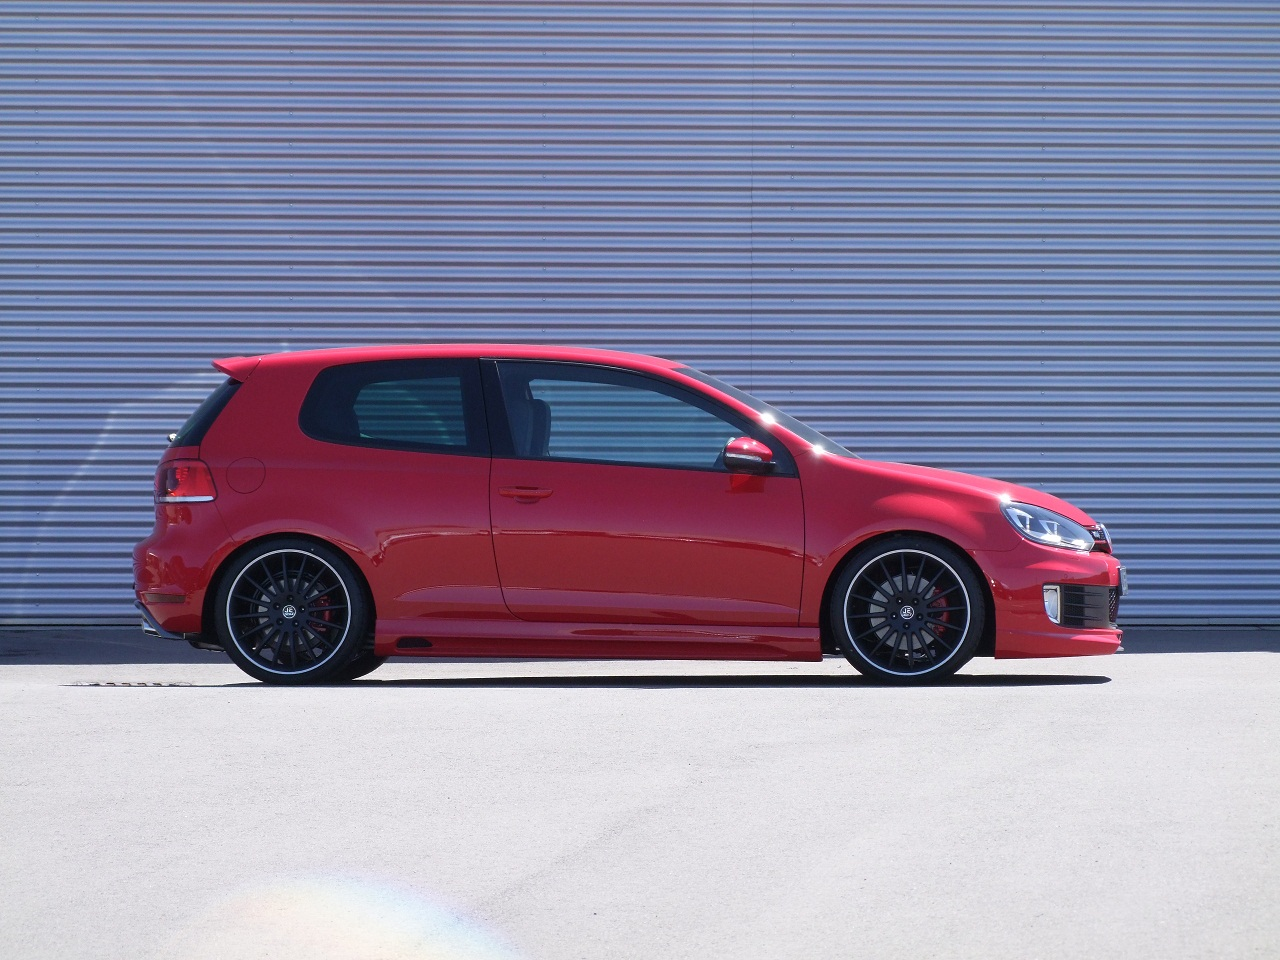 JE DESIGN puts R Power performance into the GTI